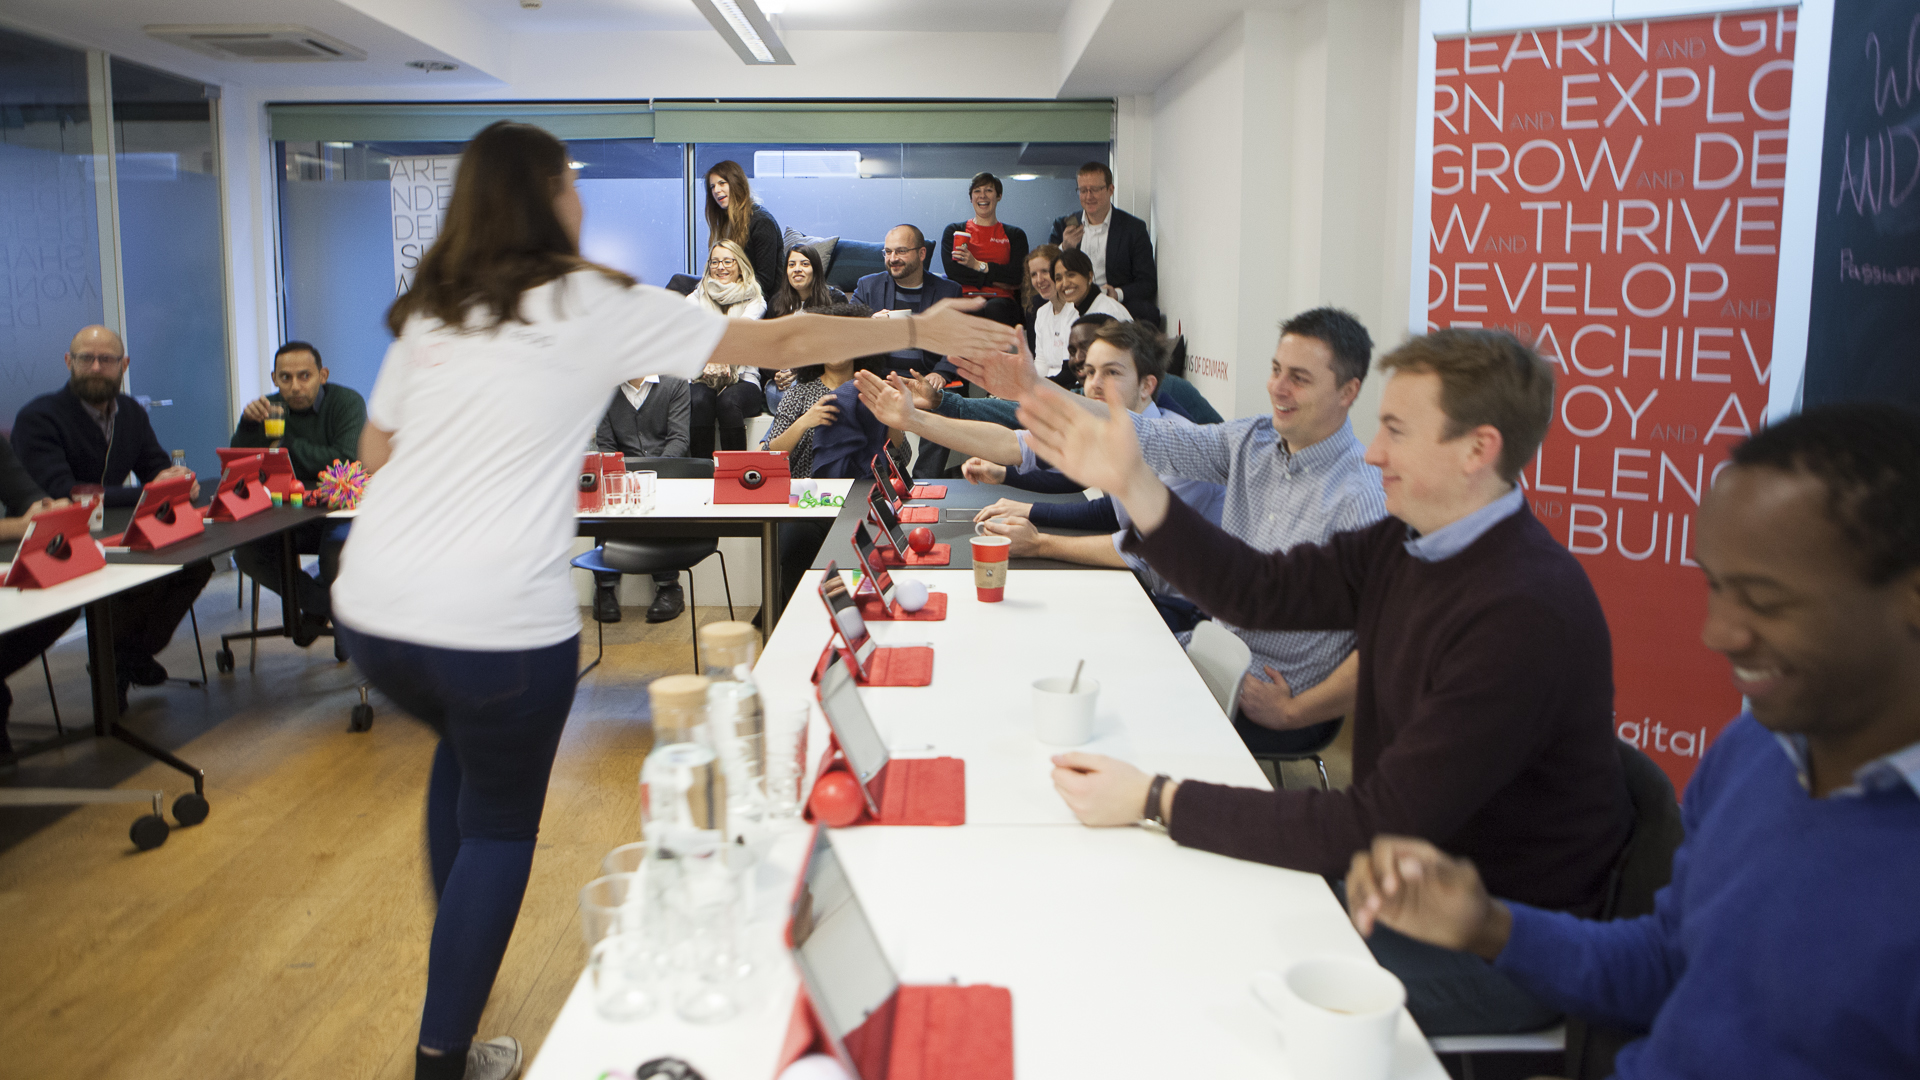 High Fives all around – AND Digital Named A Top 100 Digital Agency!